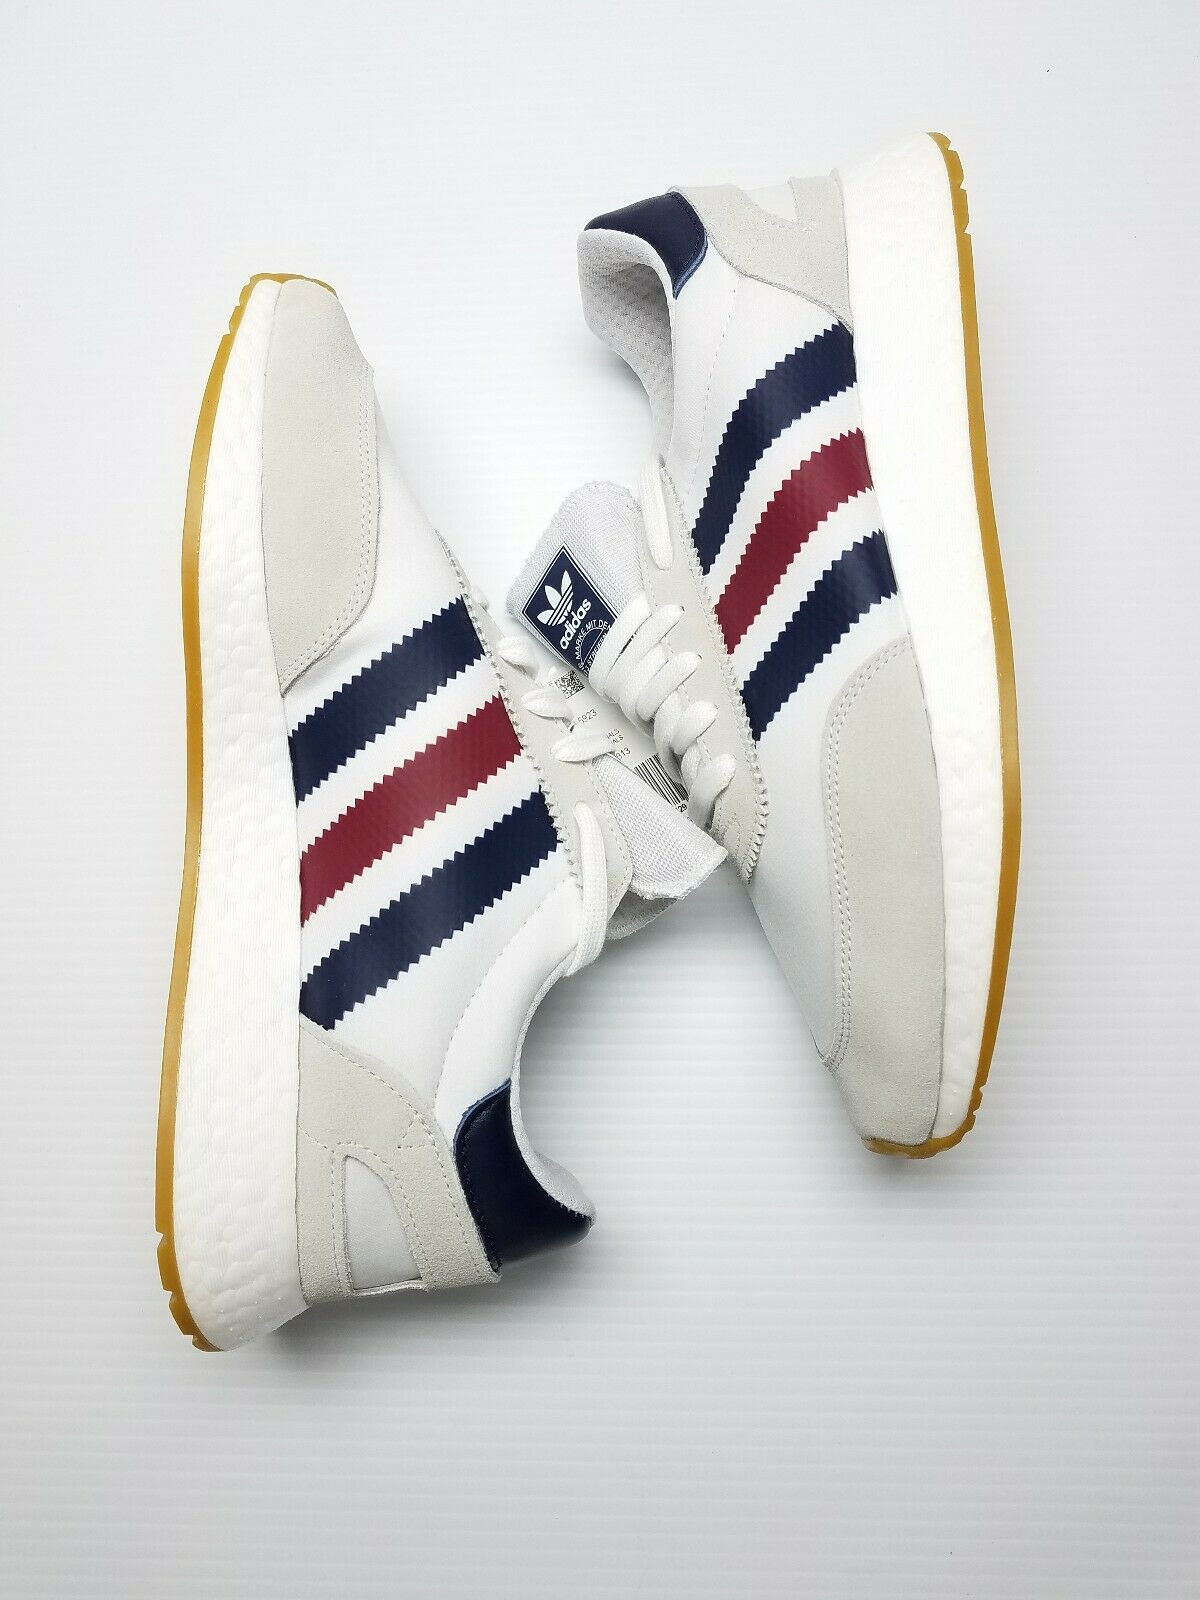 Adidas Iniki boost I-5923 BD7813 White Tri-color Men's Running shoes Sz 13